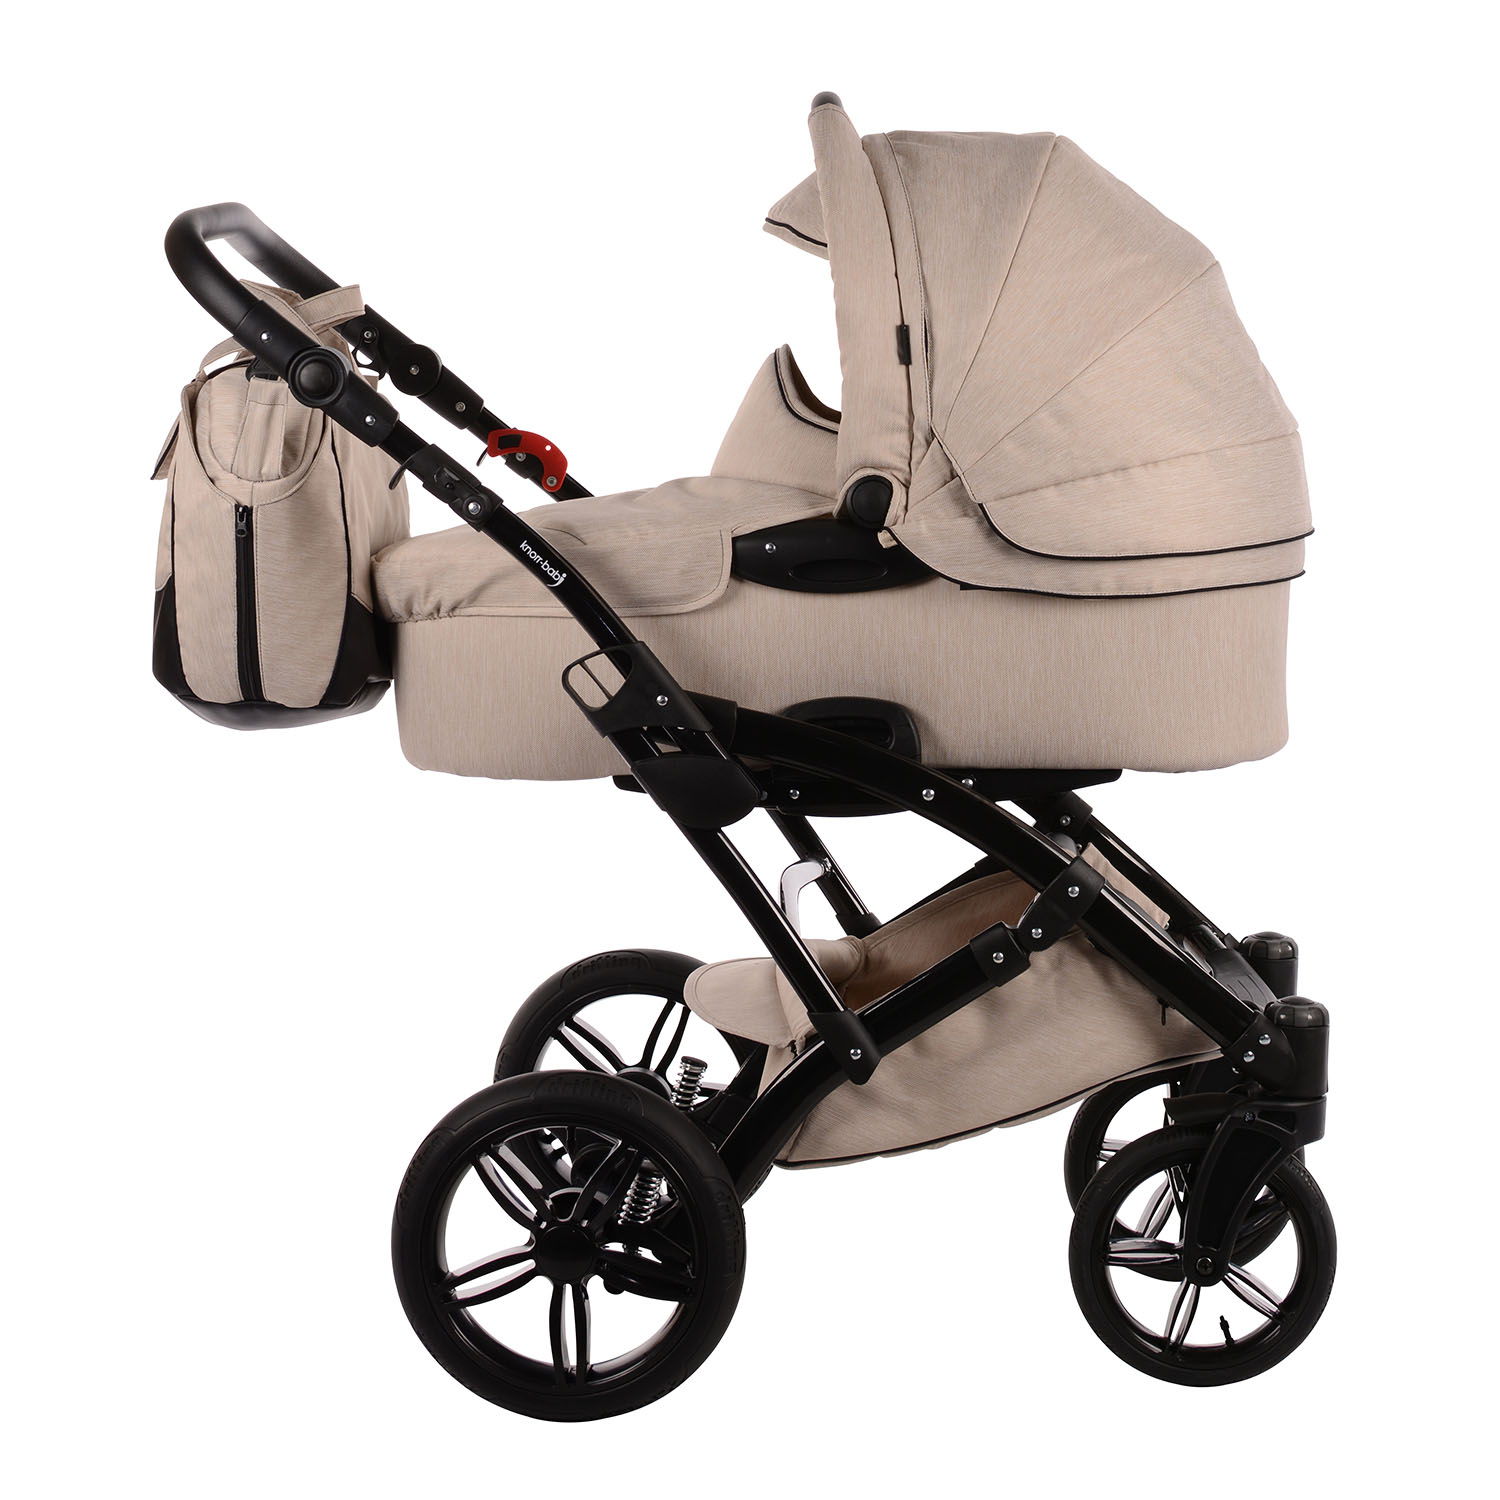 knorr baby gmbh kombi kinderwagen voletto premium beige mit wendeverdeck neu online kaufen. Black Bedroom Furniture Sets. Home Design Ideas